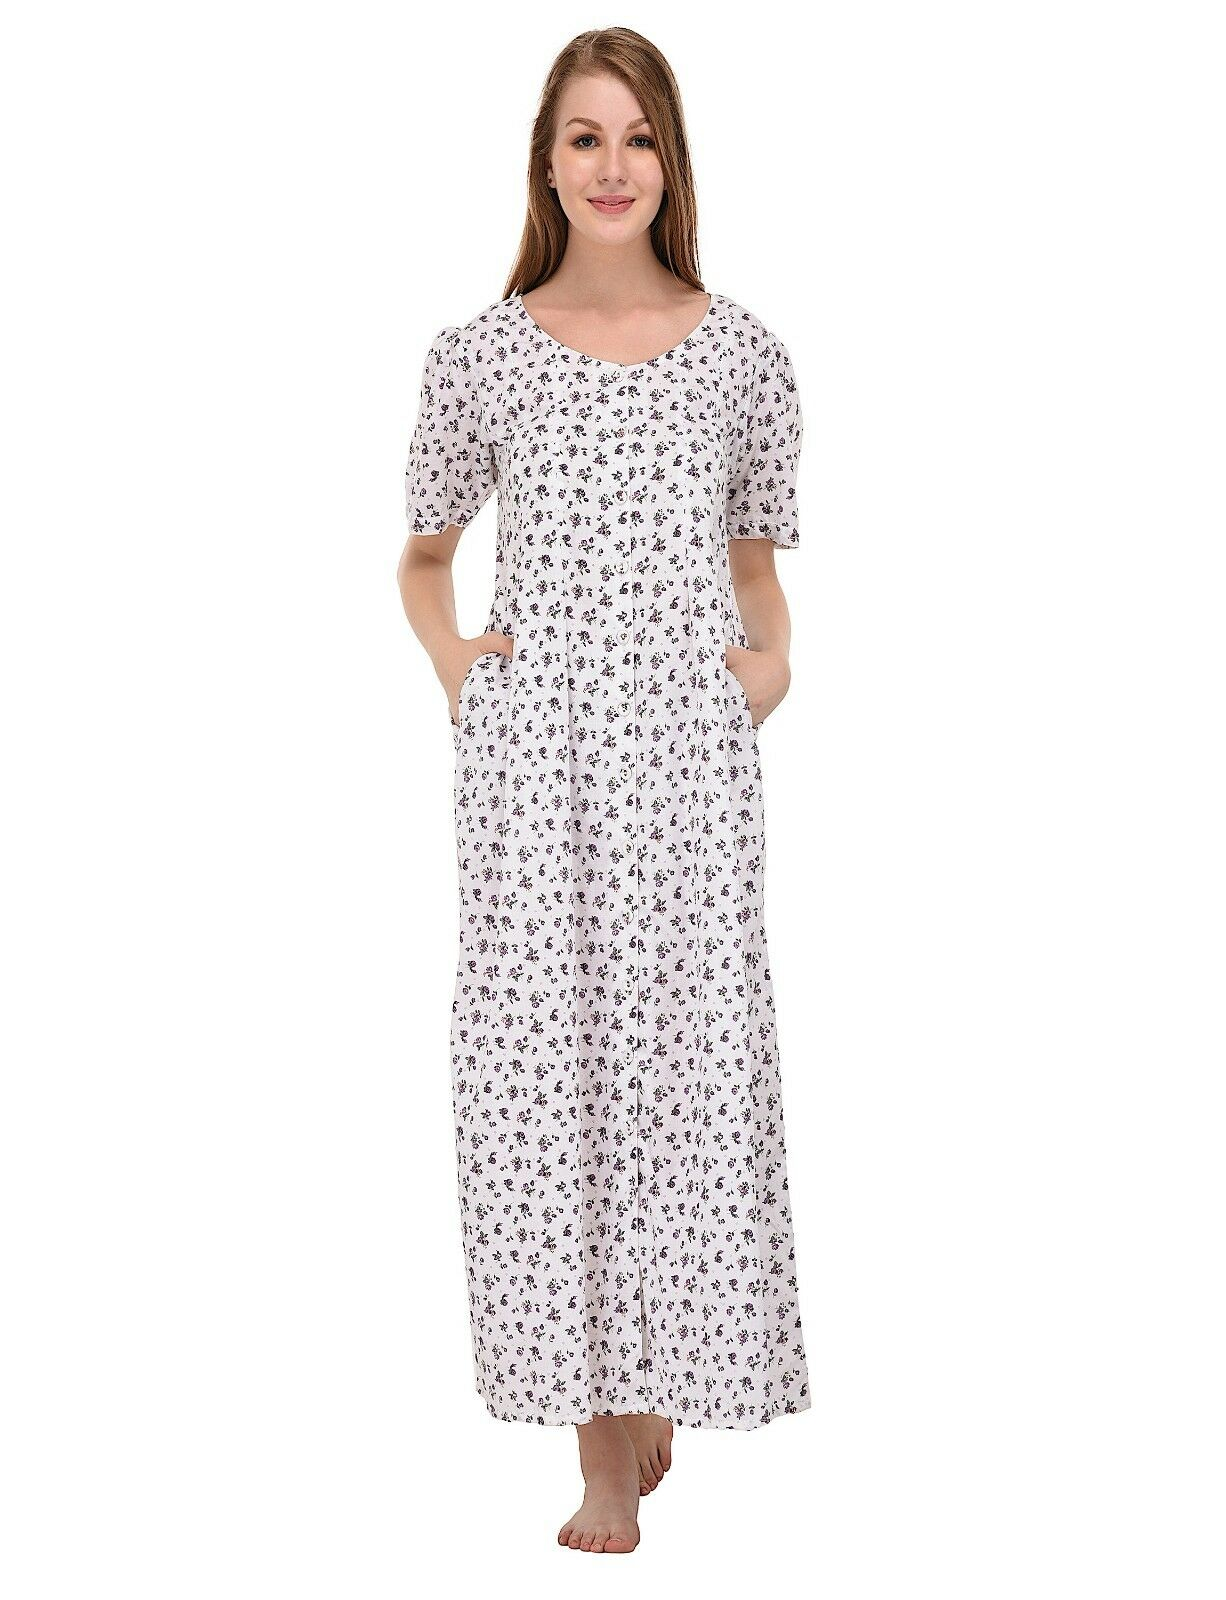 Cotton Lane Wrinkle-resistant Dress D48WYT. Größes UK 8 to 38